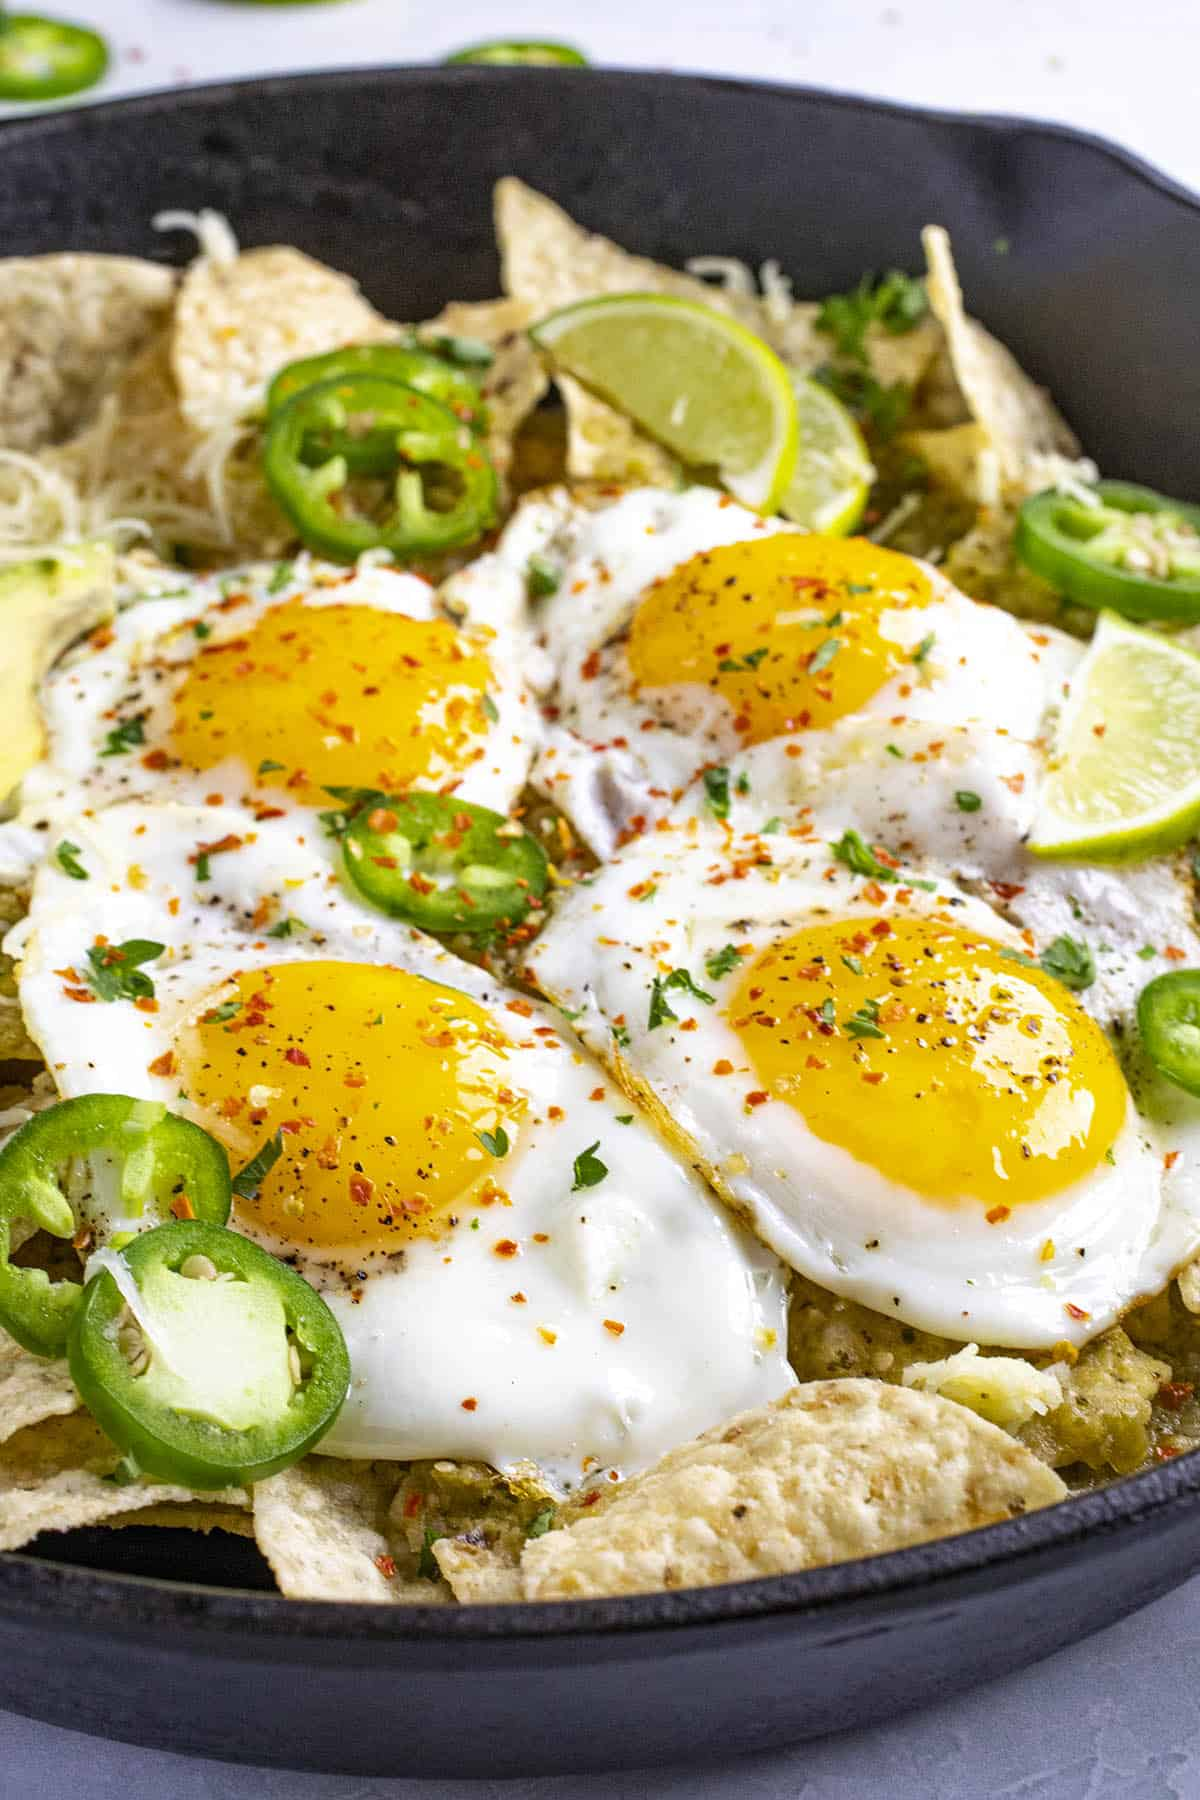 Chilaquiles Verdes in a pan